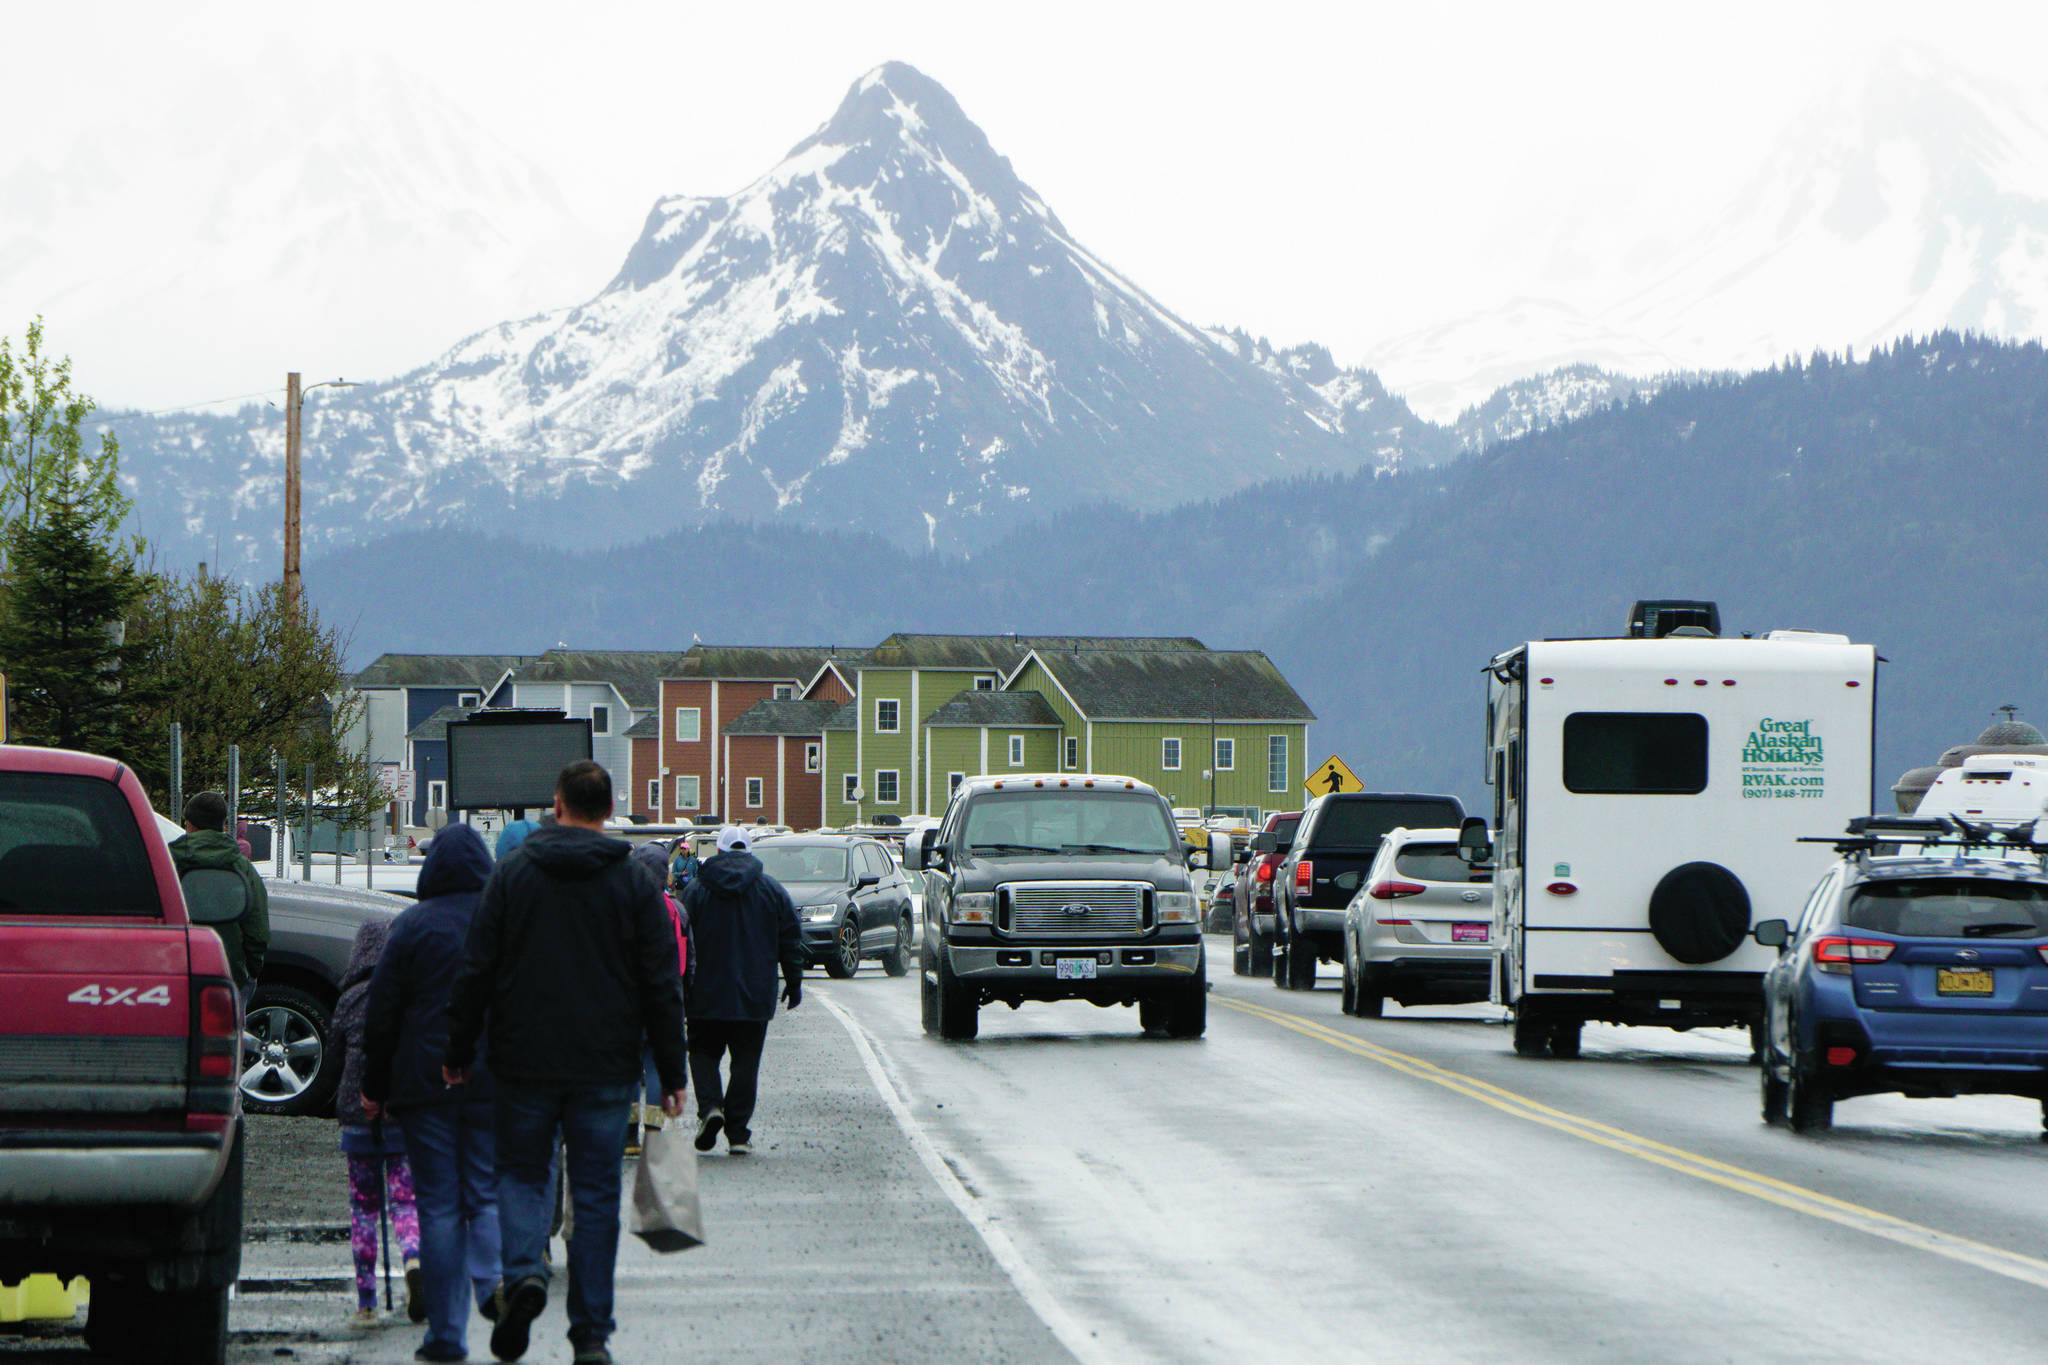 Poot Peak looms over visitors to the Homer Spit on Saturday, May 29, 2021, in Homer, Alaska. (Photo by Michael Armstrong/Homer News)